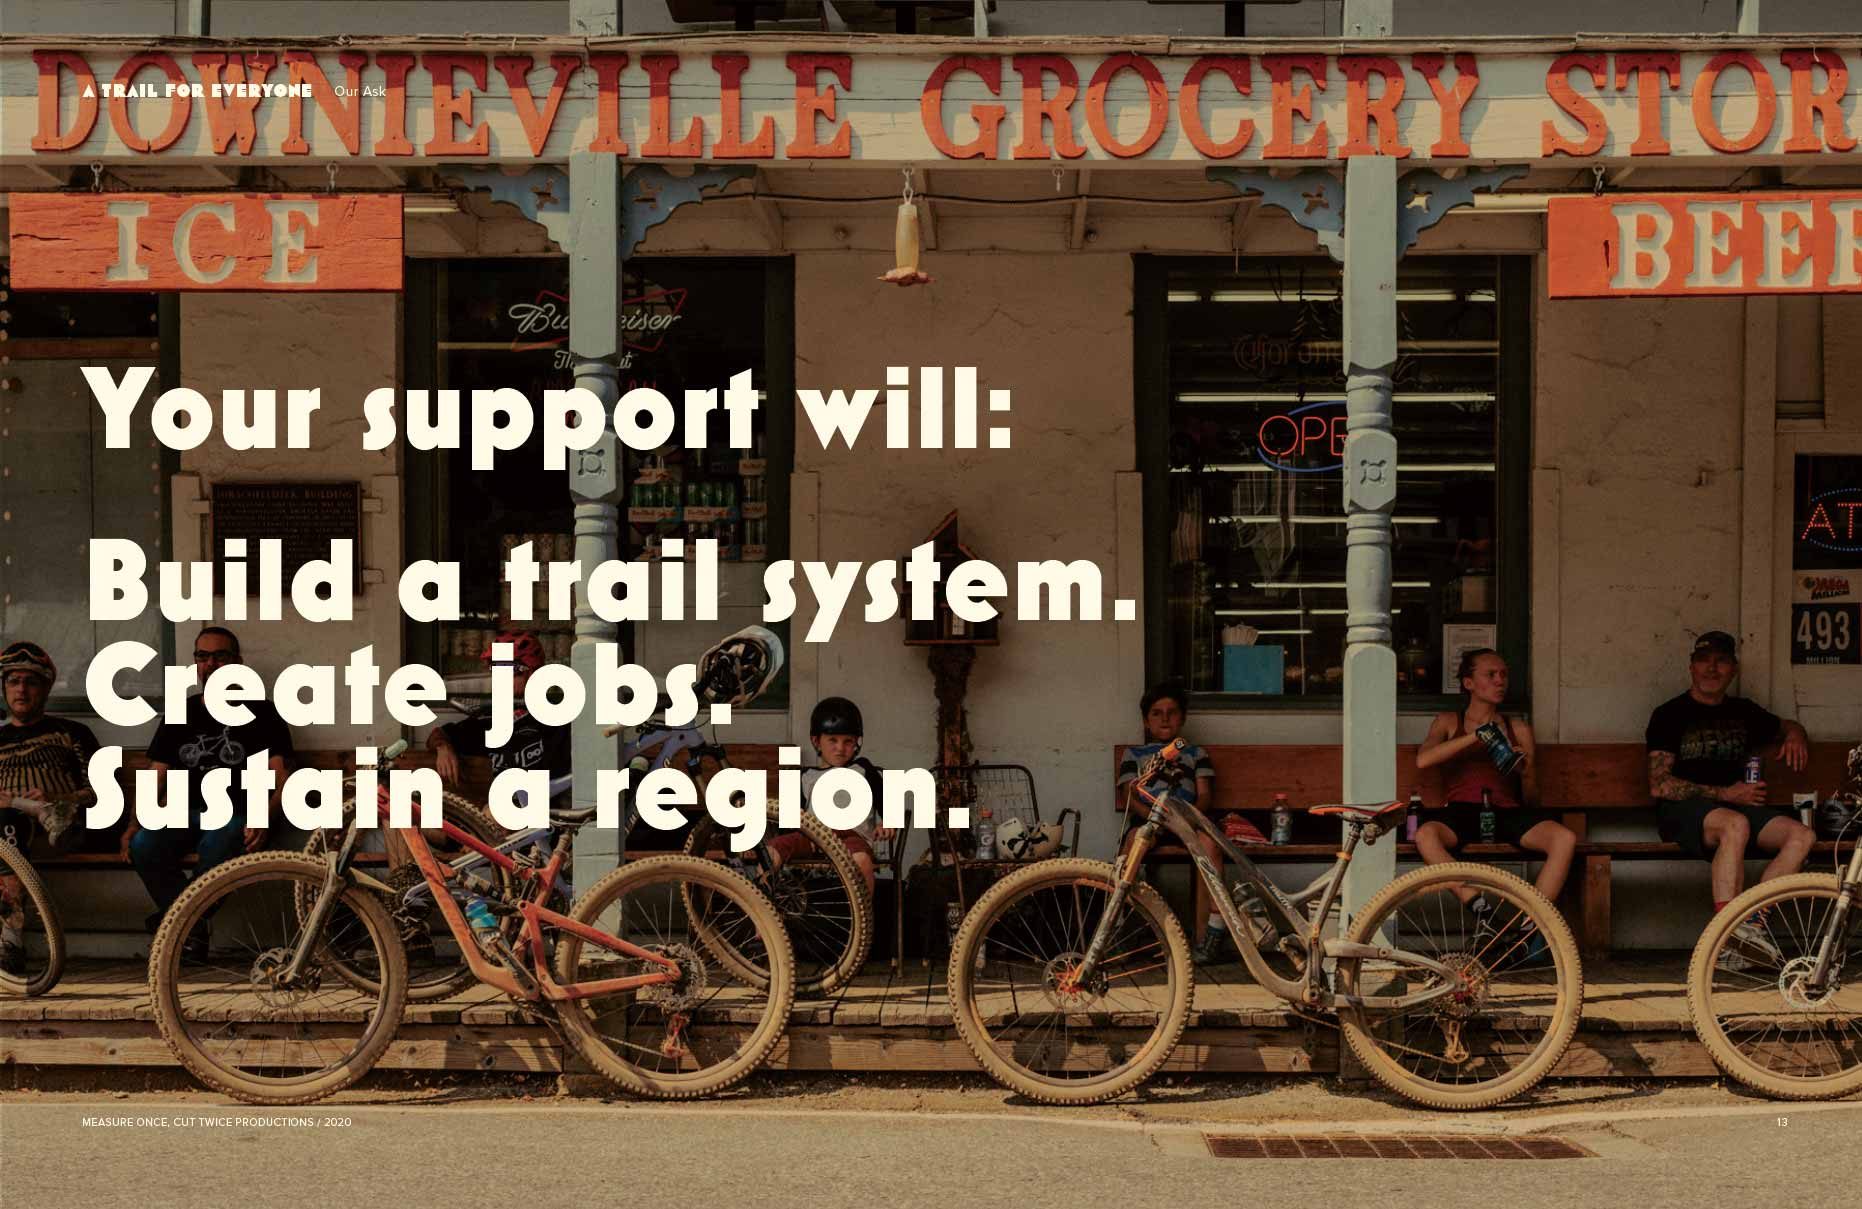 Your support will: Build a trail system. Create jobs. Sustain a region.